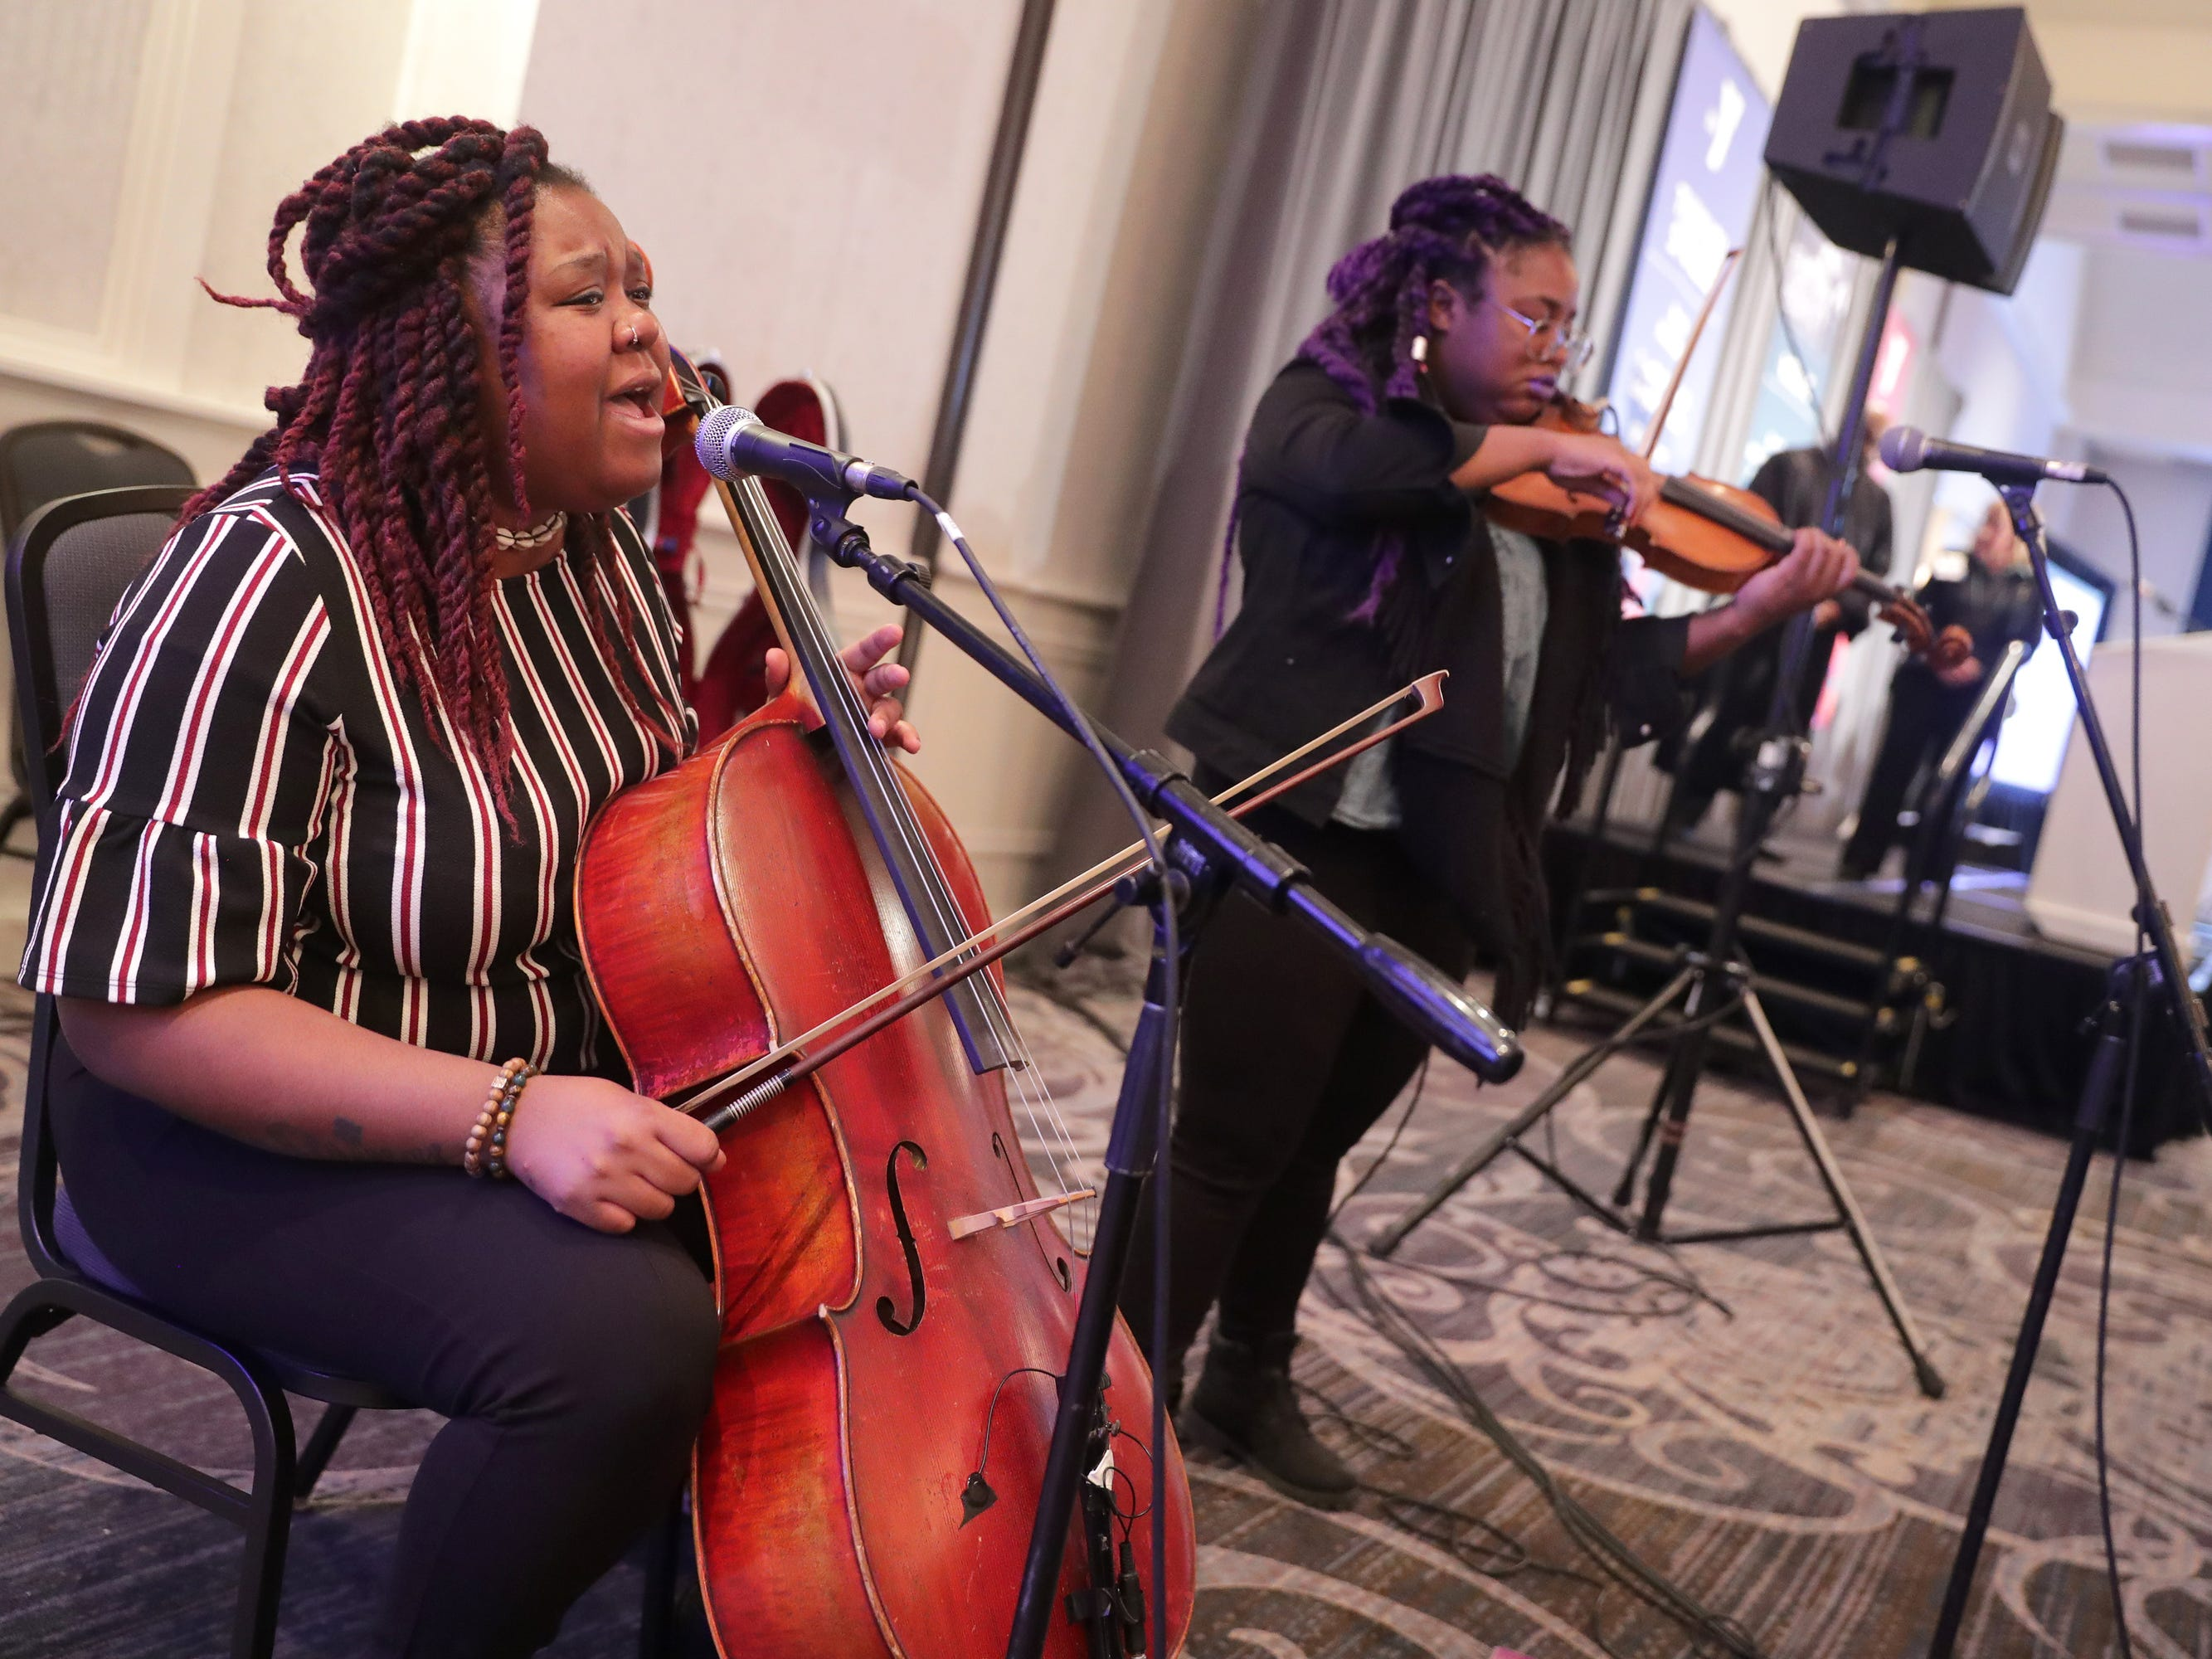 Monique Ross (left) on the cello and her sister Chauntee Ross on the violin perform as SistaStrings at the YMCA of Metropolitan Milwaukee 22nd annual Dr. Martin Luther King Jr. celebration breakfast at the Italian Community Center in Milwaukee.